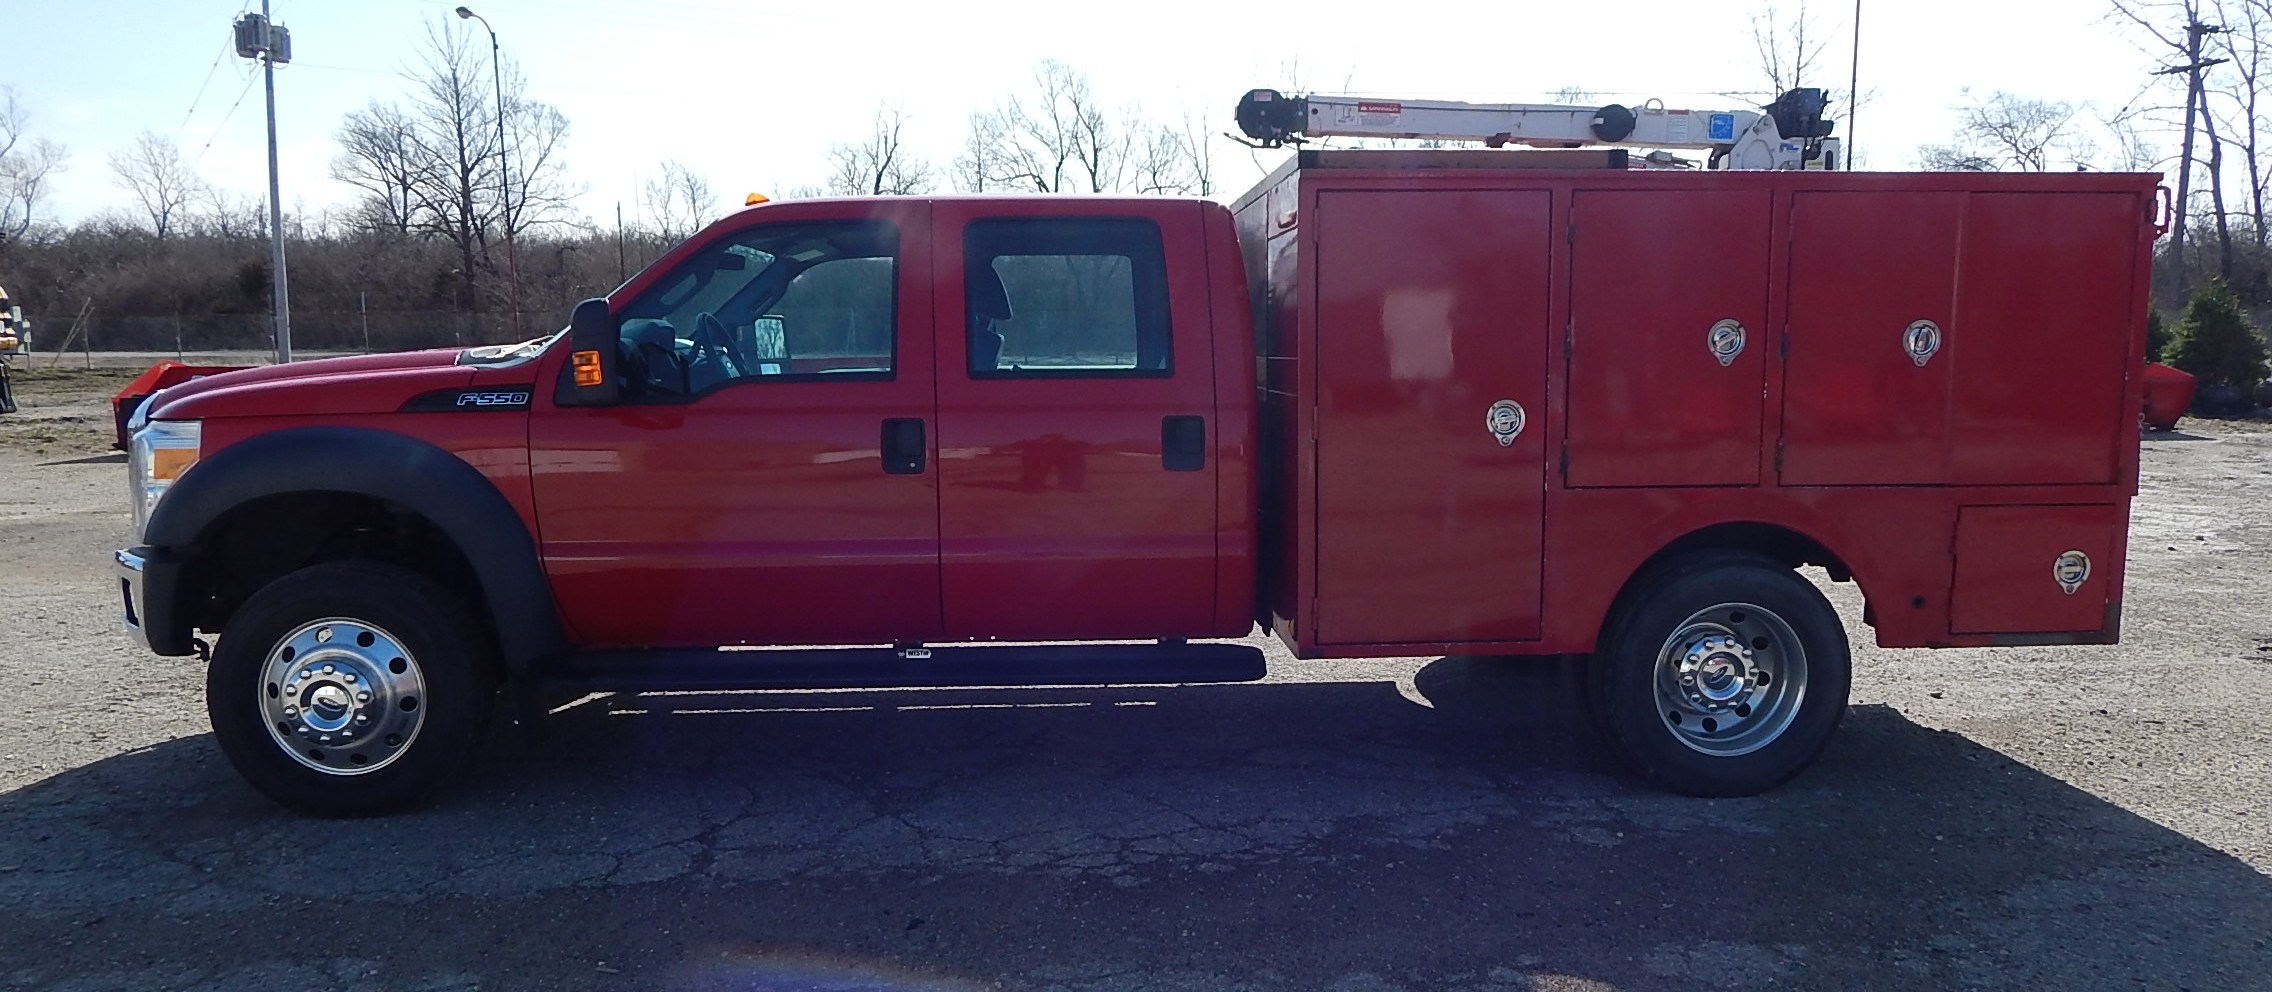 Lot 6 - 2012 Ford F550 XL Super Duty Dually Service Truck, VIN: 1FD0W5GT0CEA33207, Crew Cab, Automatic,